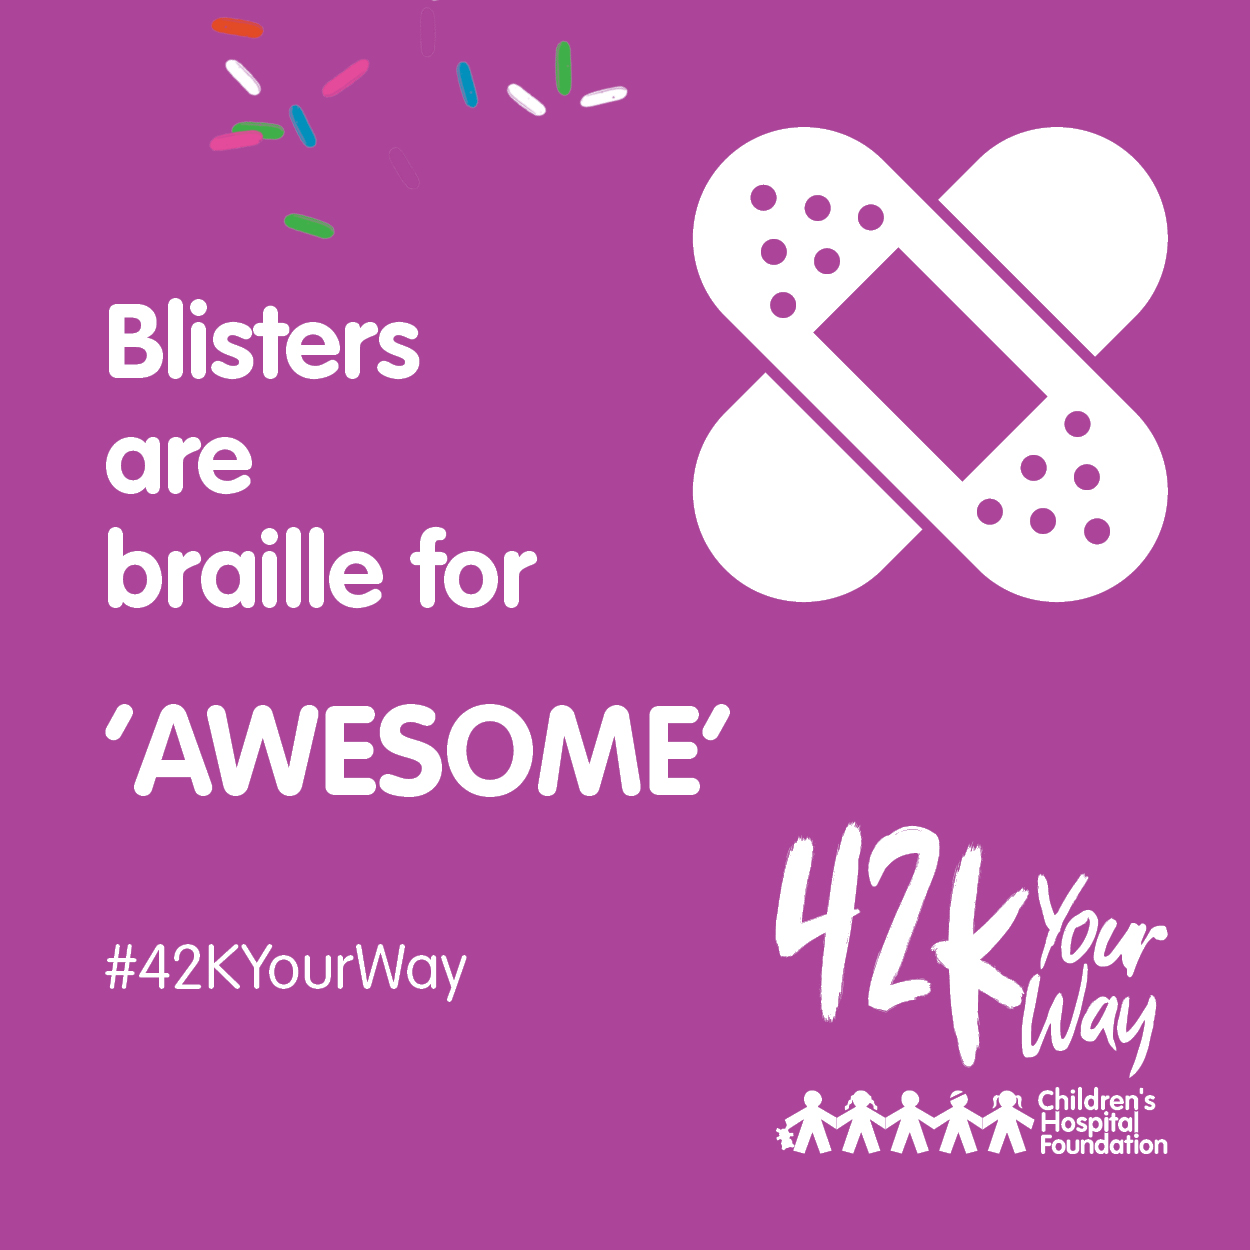 42k Your Way - Blisters